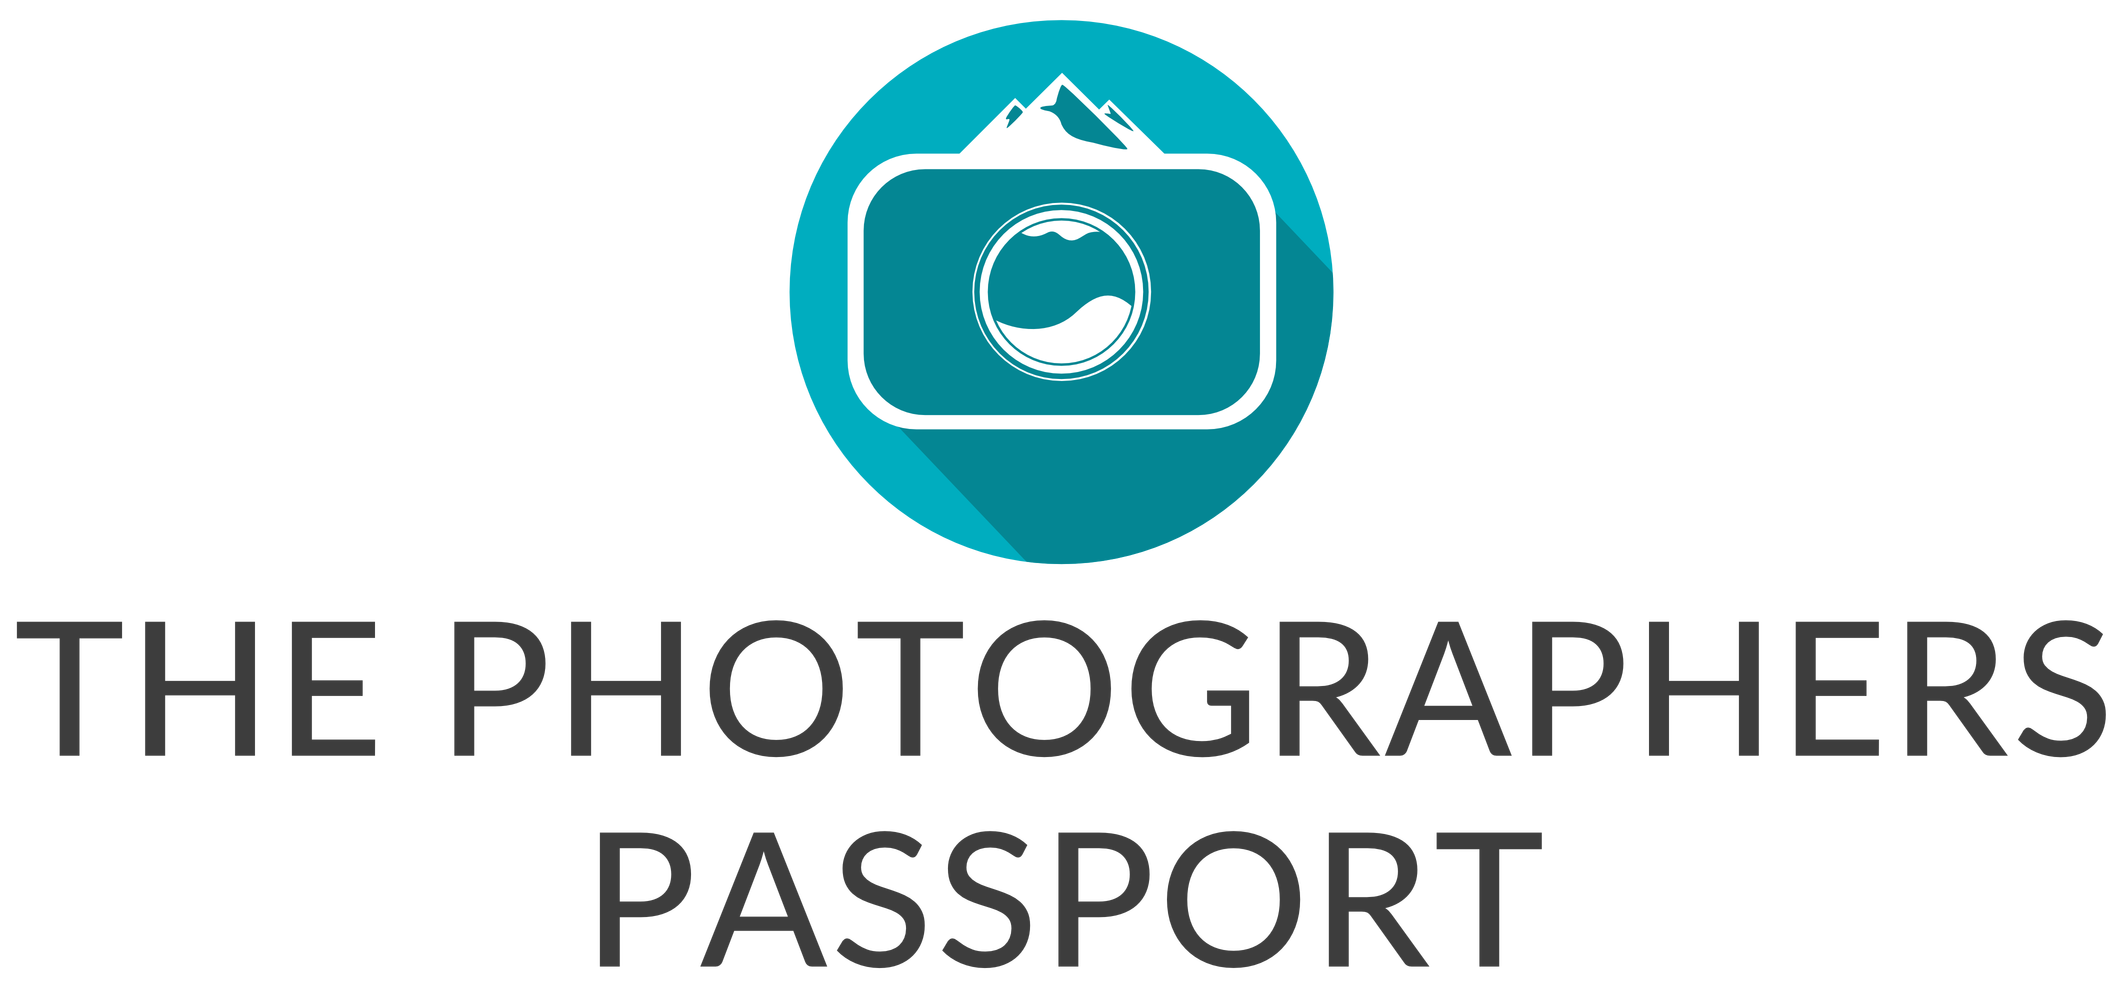 The Photographers Passport